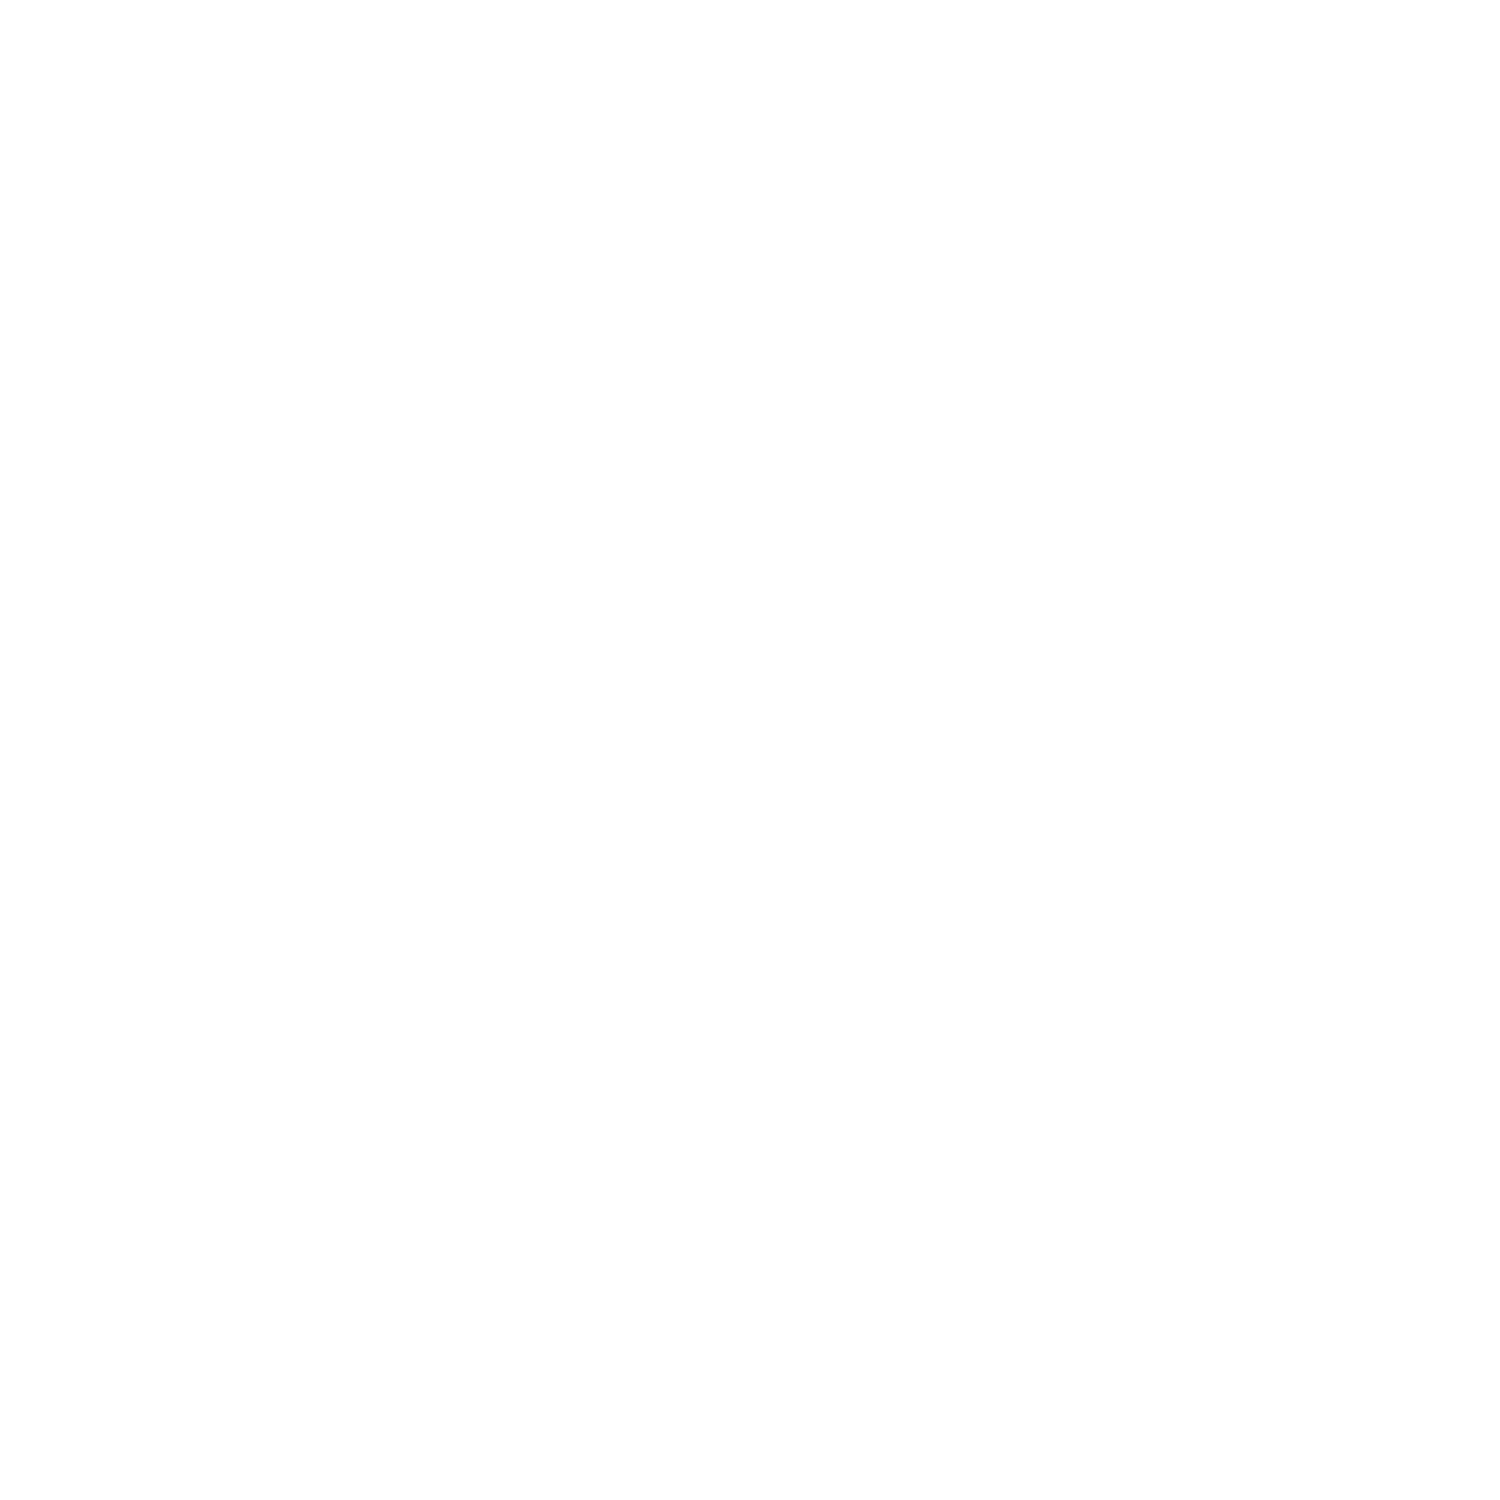 The behinds of Alouette by Alondra Angeles